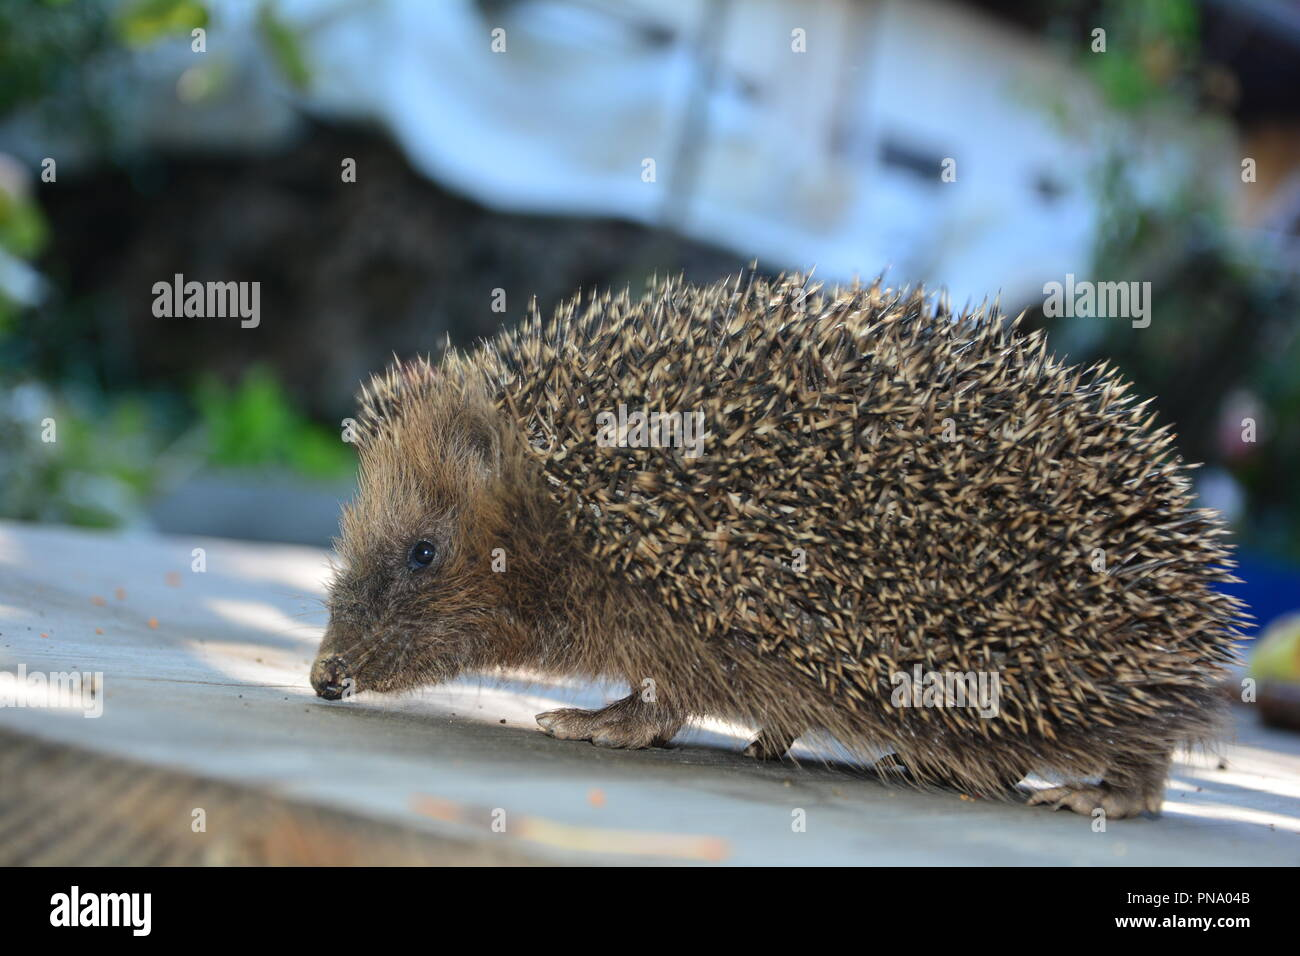 Hedgehog from the side on wood in sunlight - Stock Image